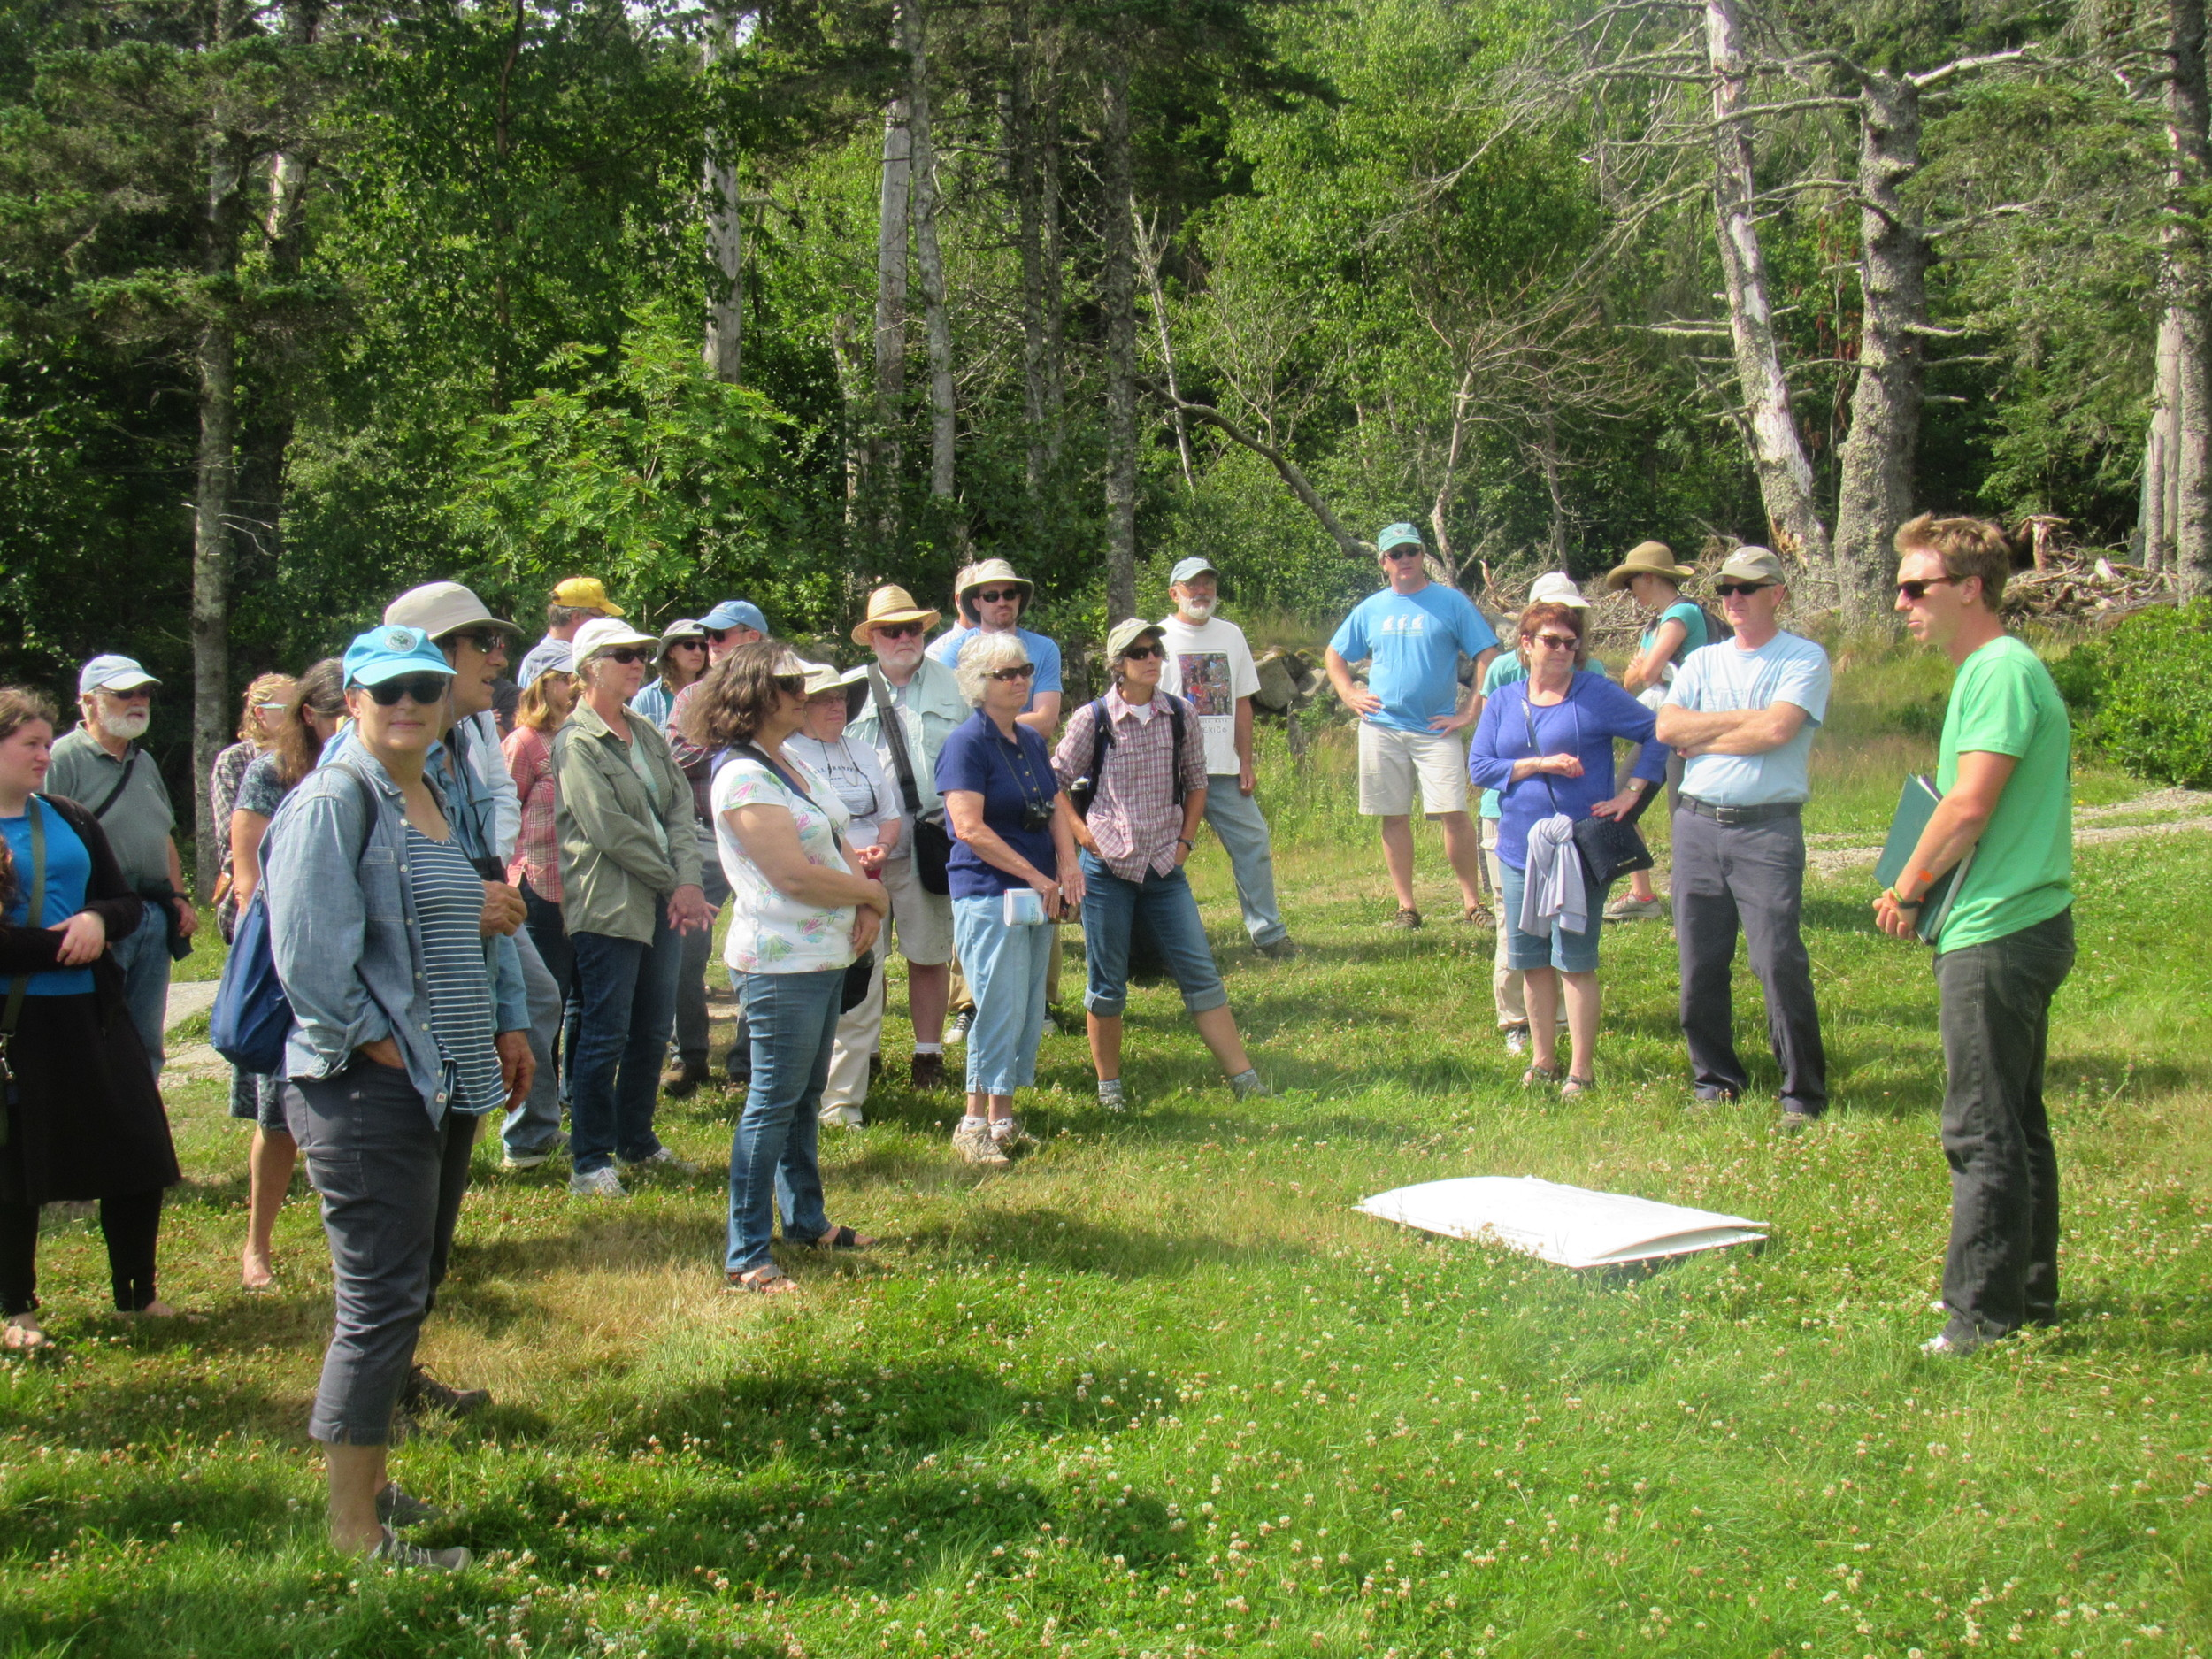 Vinalhaven Land Trust participants touring the facilities with Facilities Manager Oakley Jackson